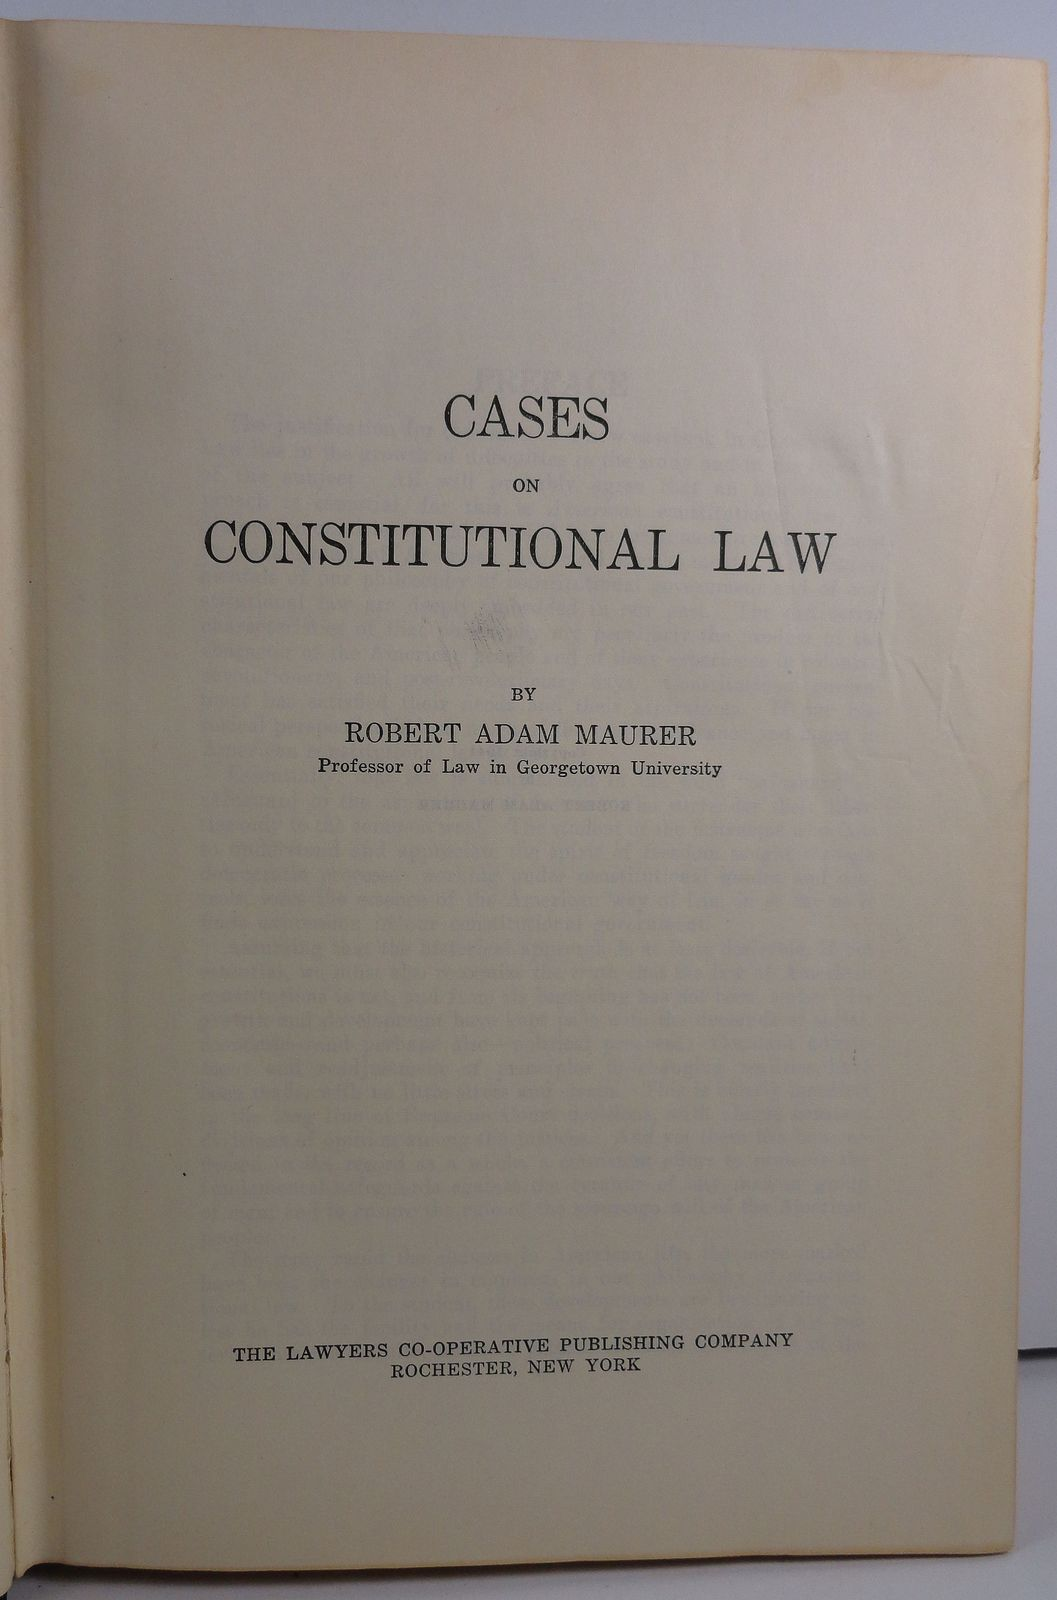 Cases on Constitutional Law by Robert Adam Maurer 1941